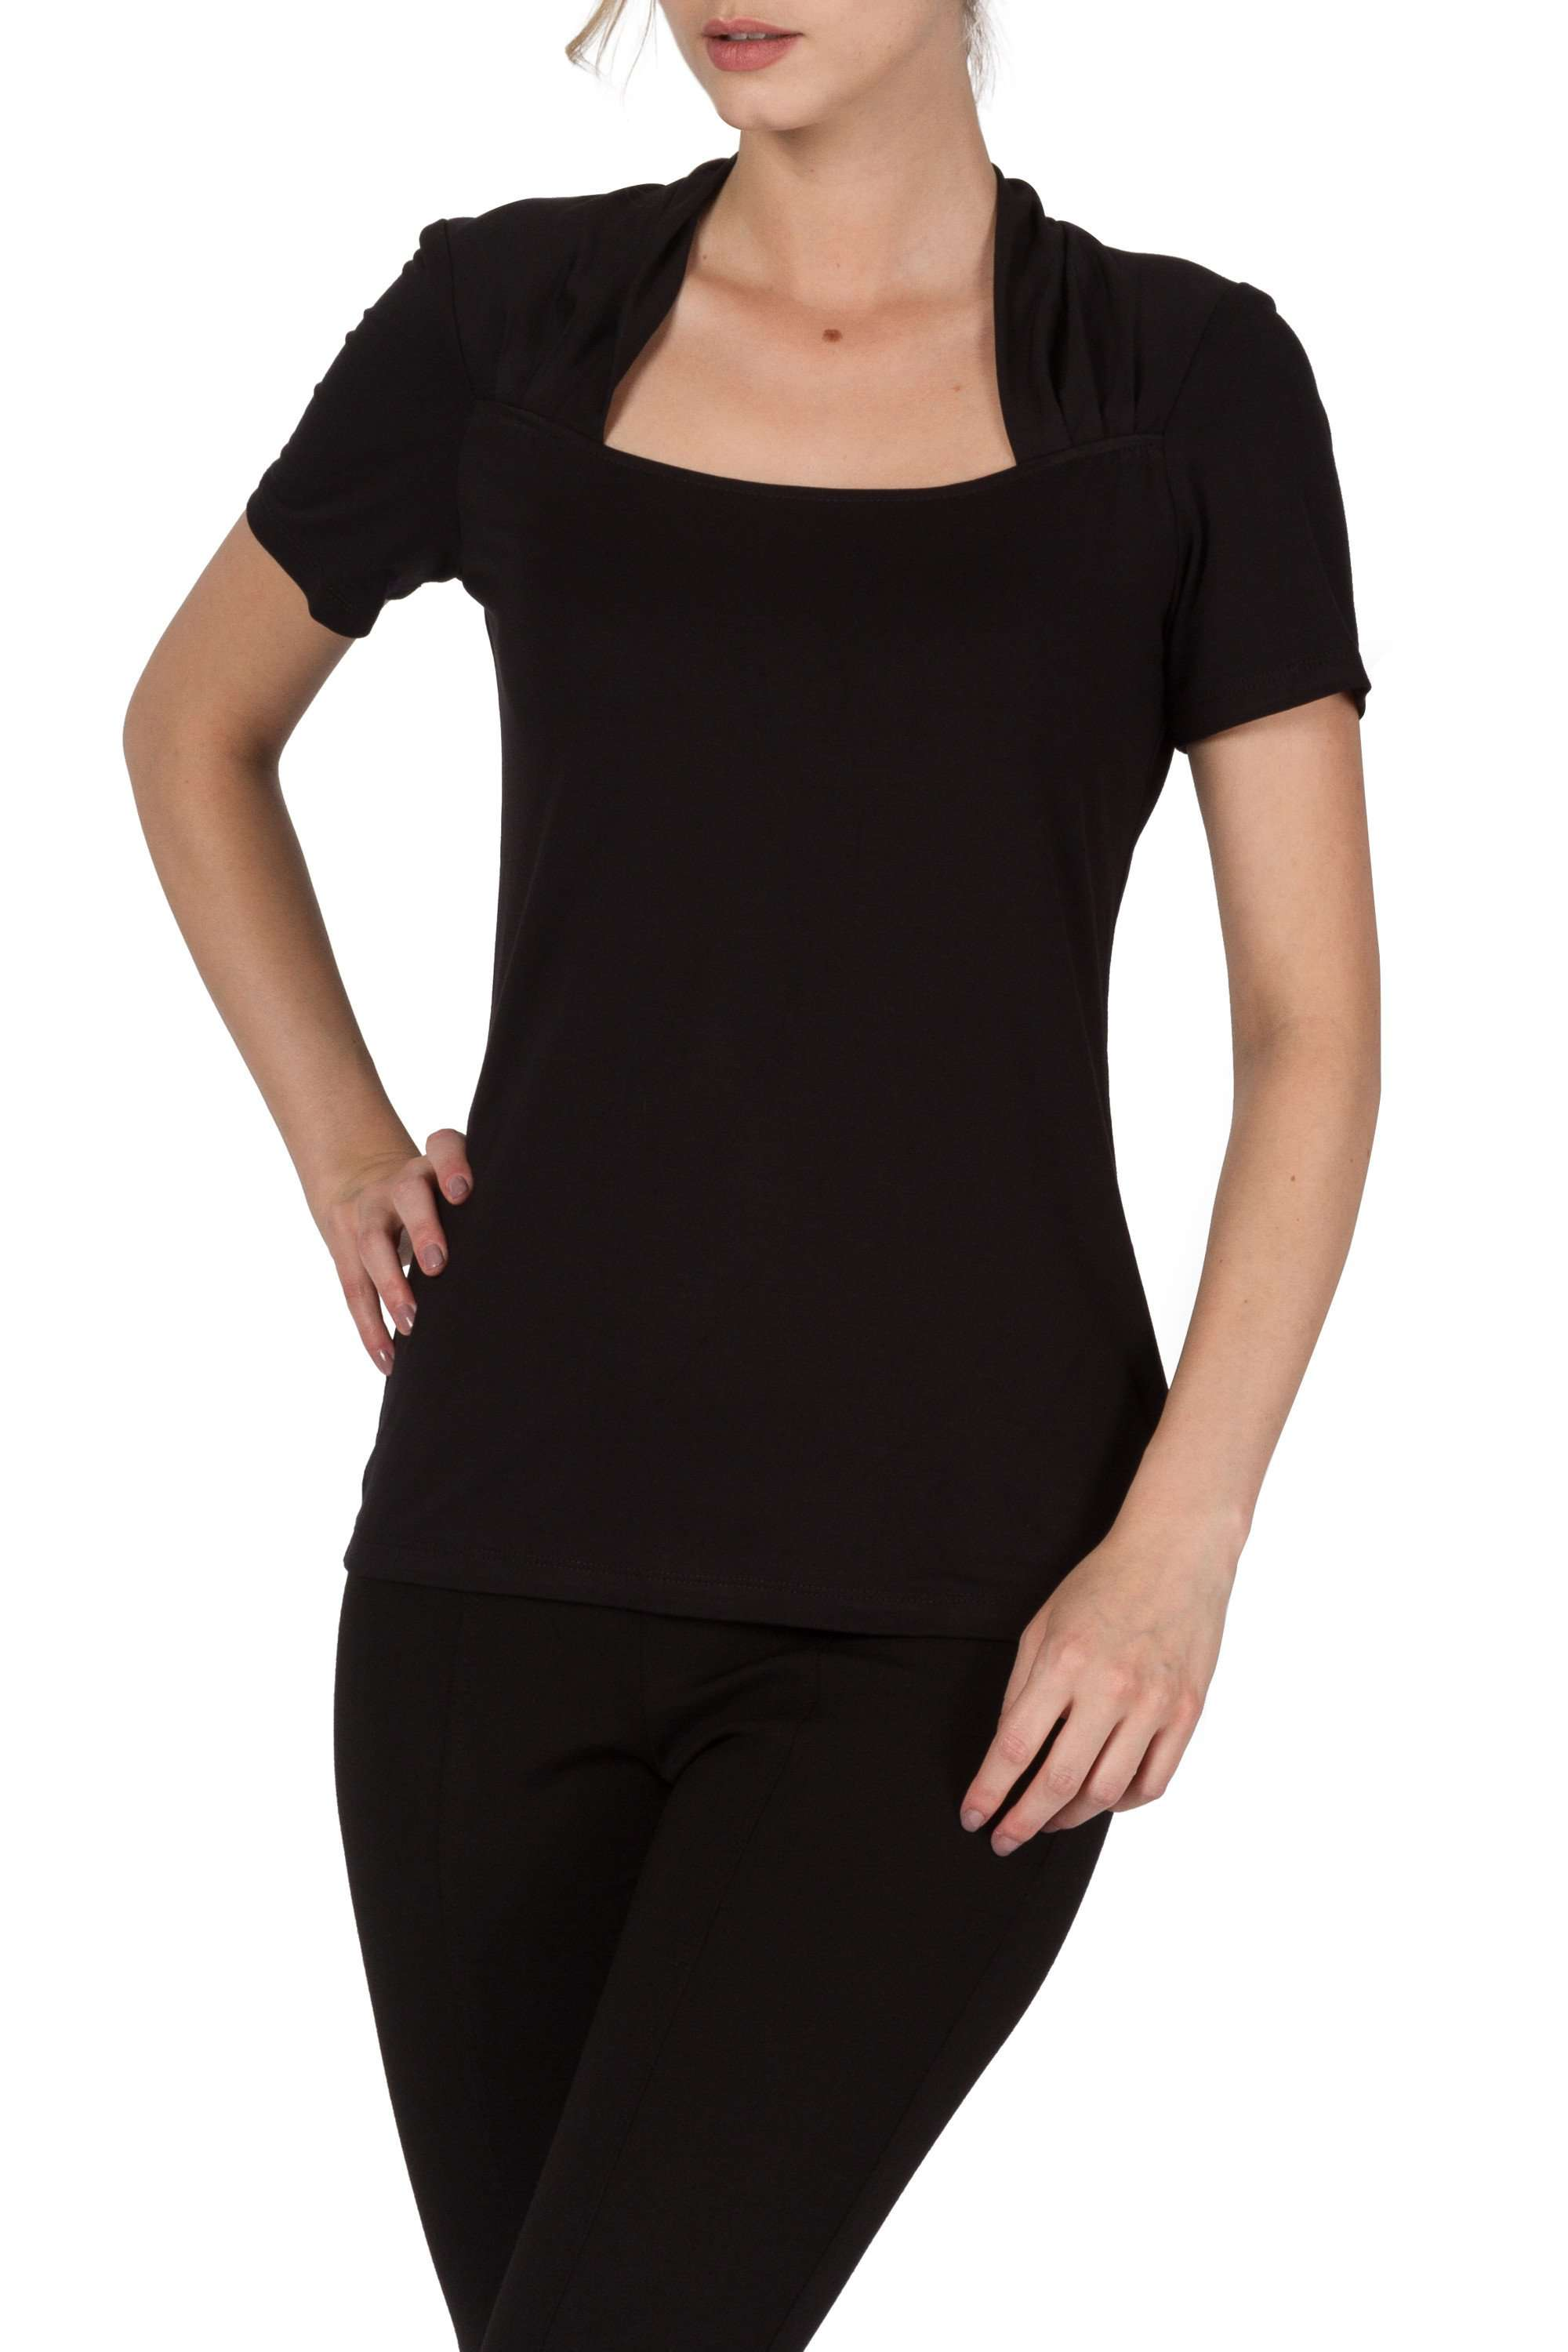 Black Top With Sweetheart Neckline